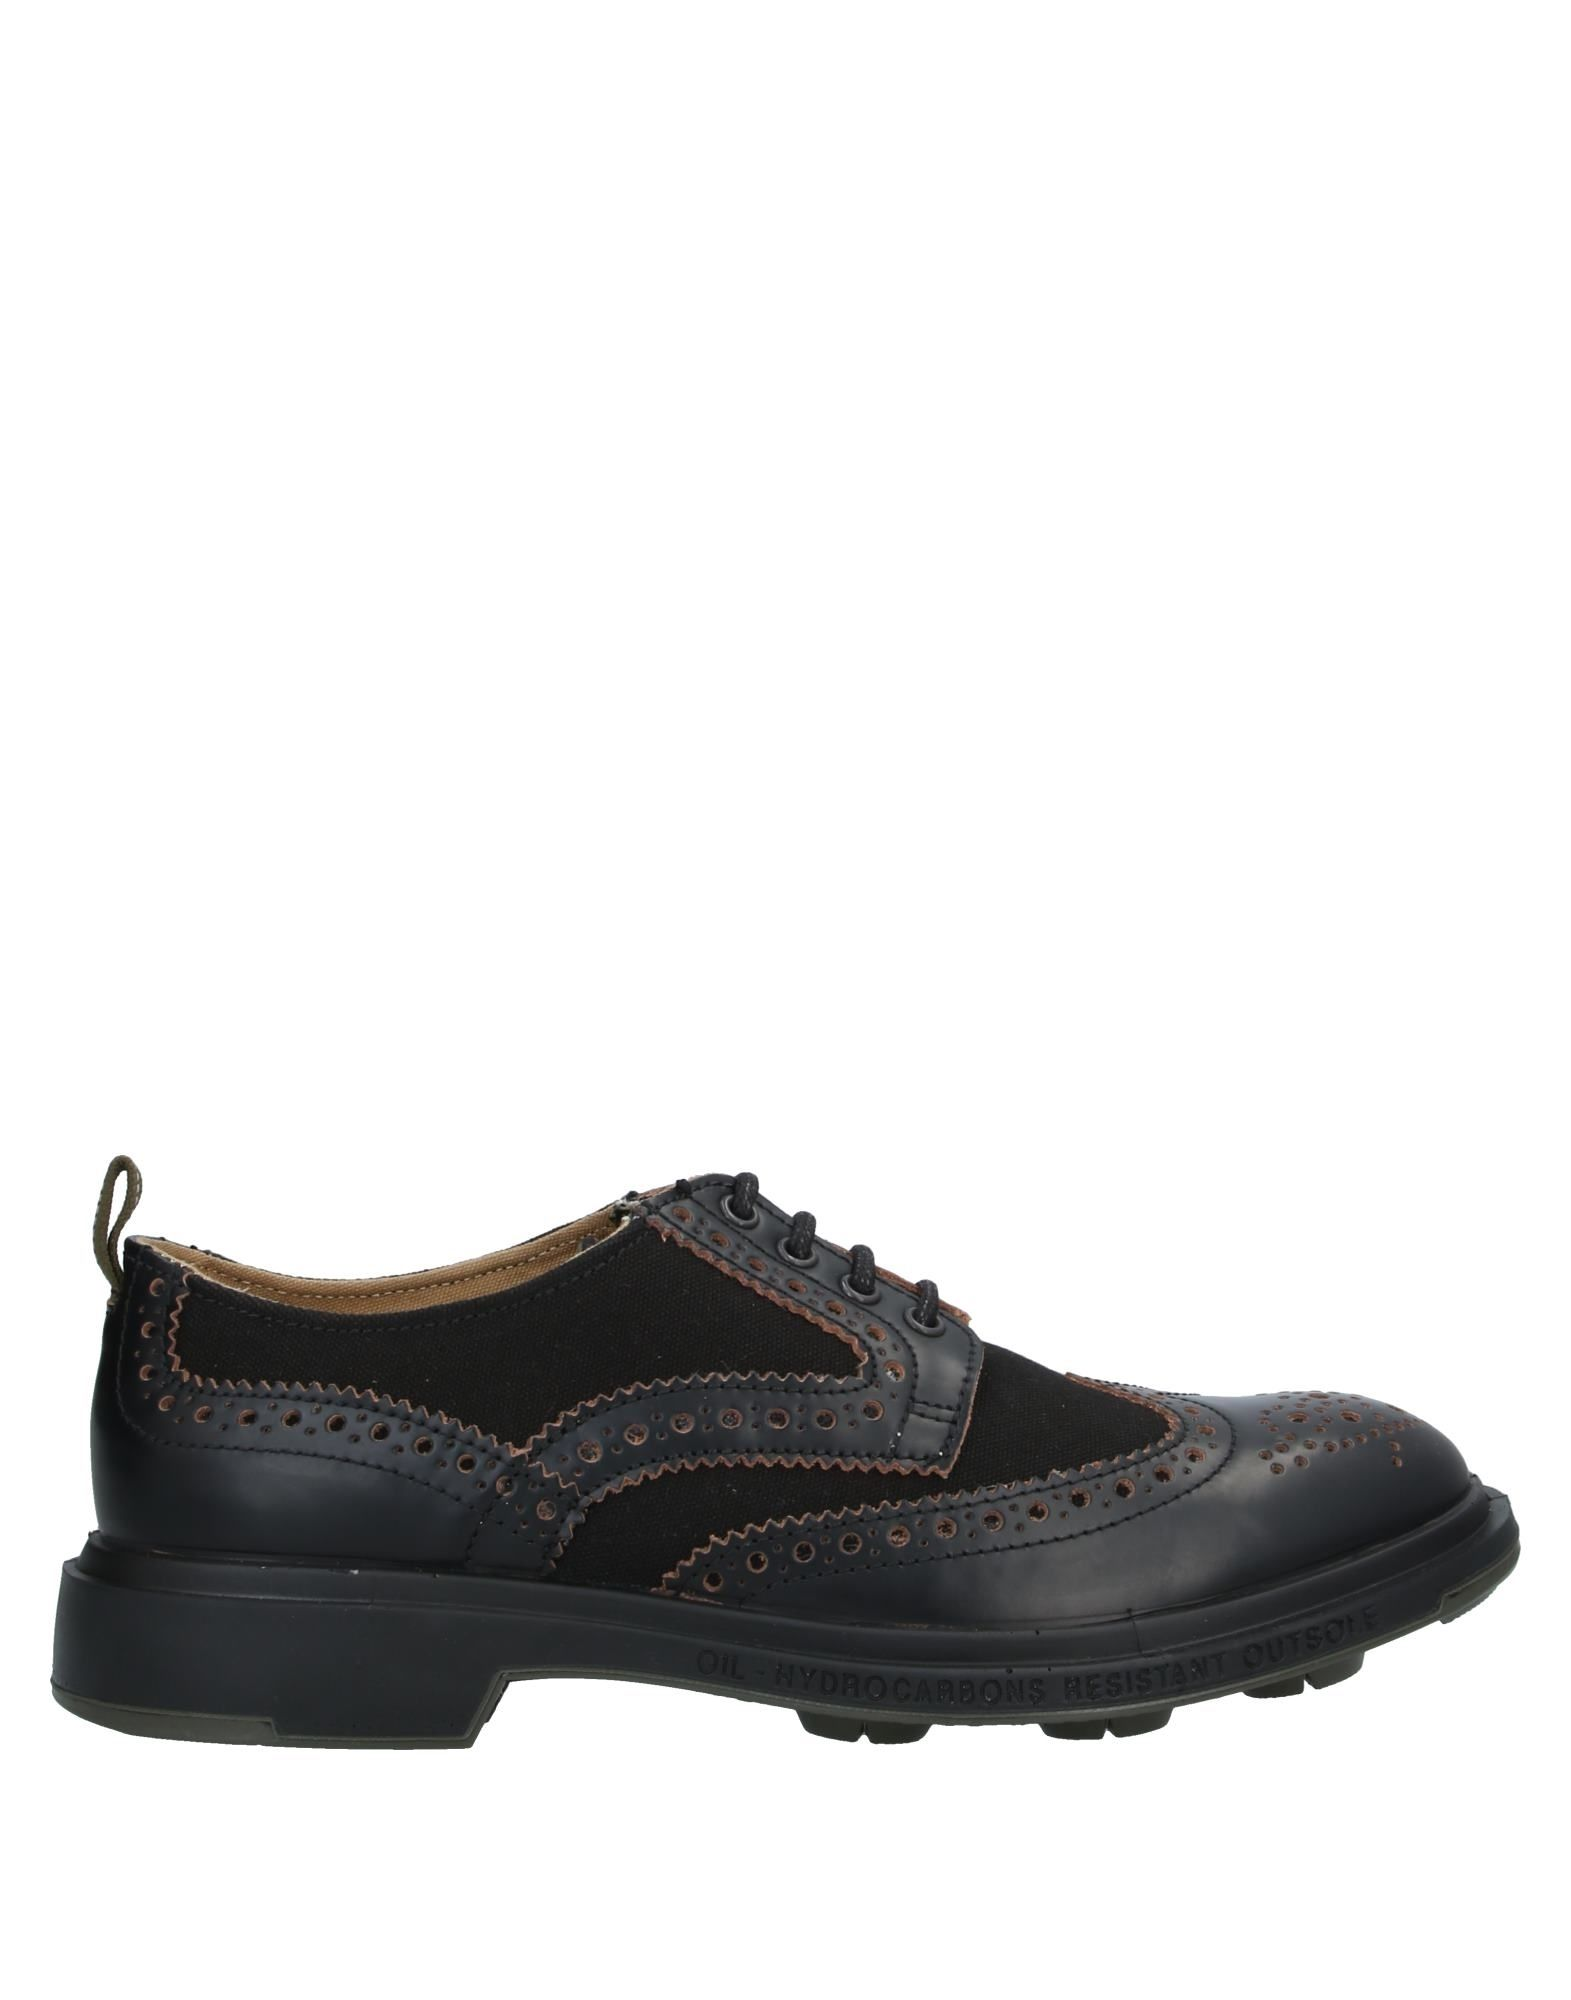 Pezzol 1951 Lace-up Shoes In Black